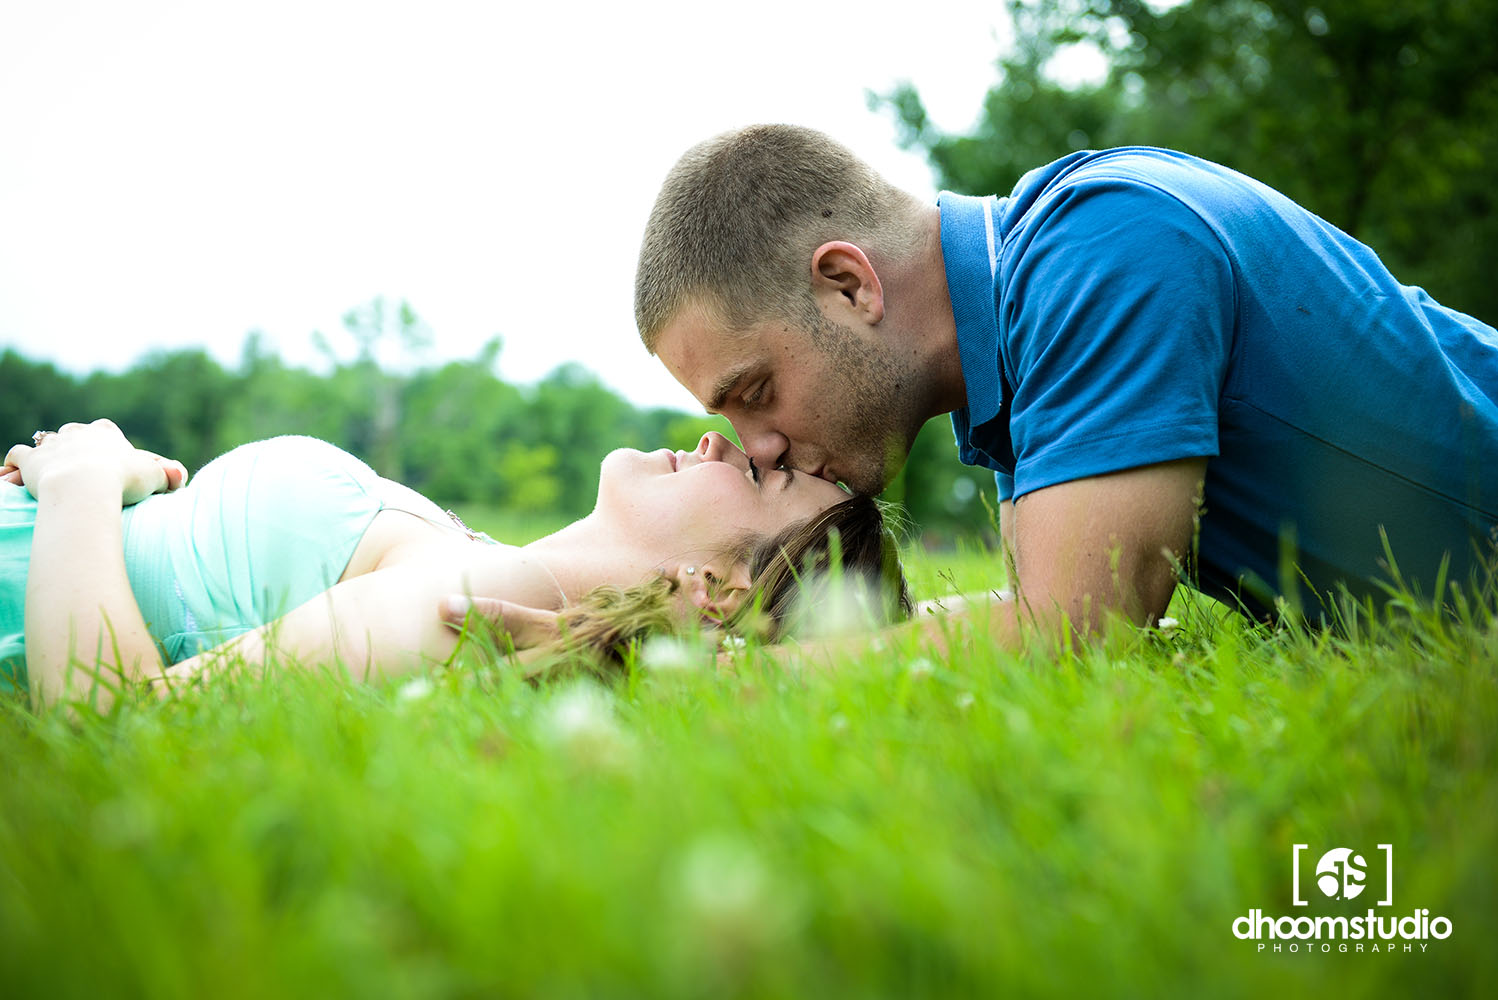 Anna + Chris Engagement Session | Verona Park, NJ. 06.16.13